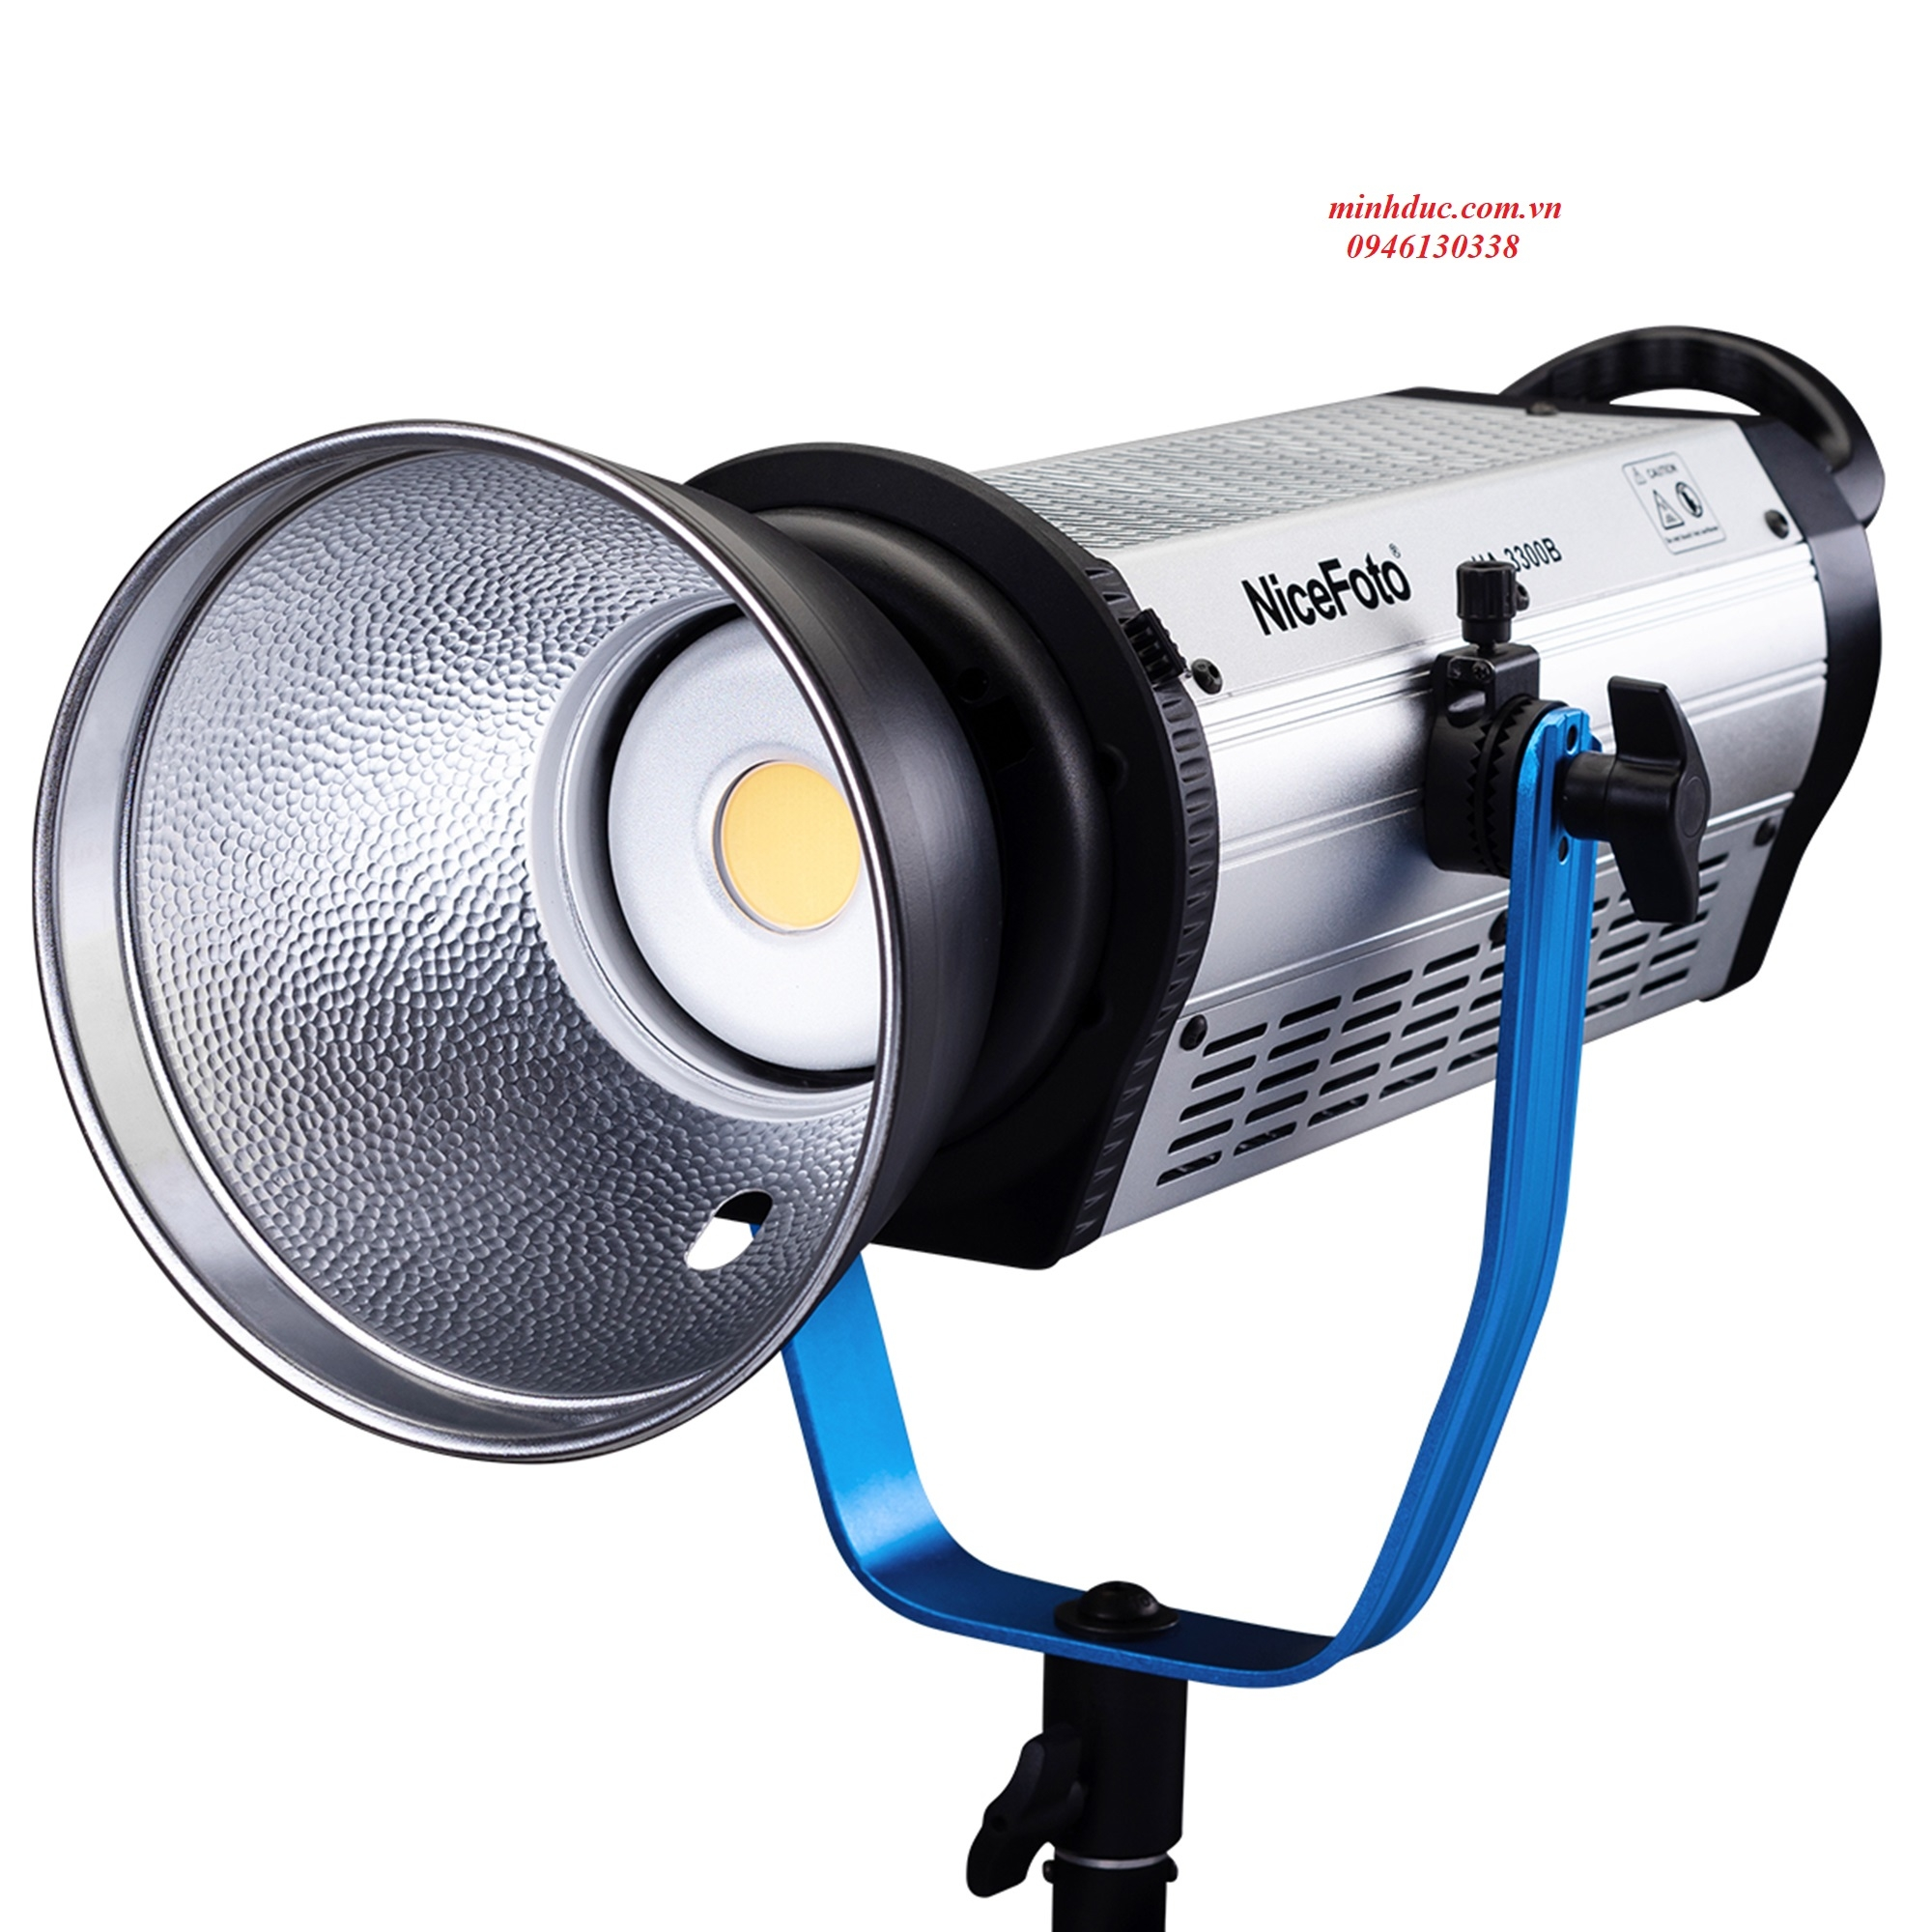 Đèn Nicefoto Led HA3300B Video Light 5500k Photoviet